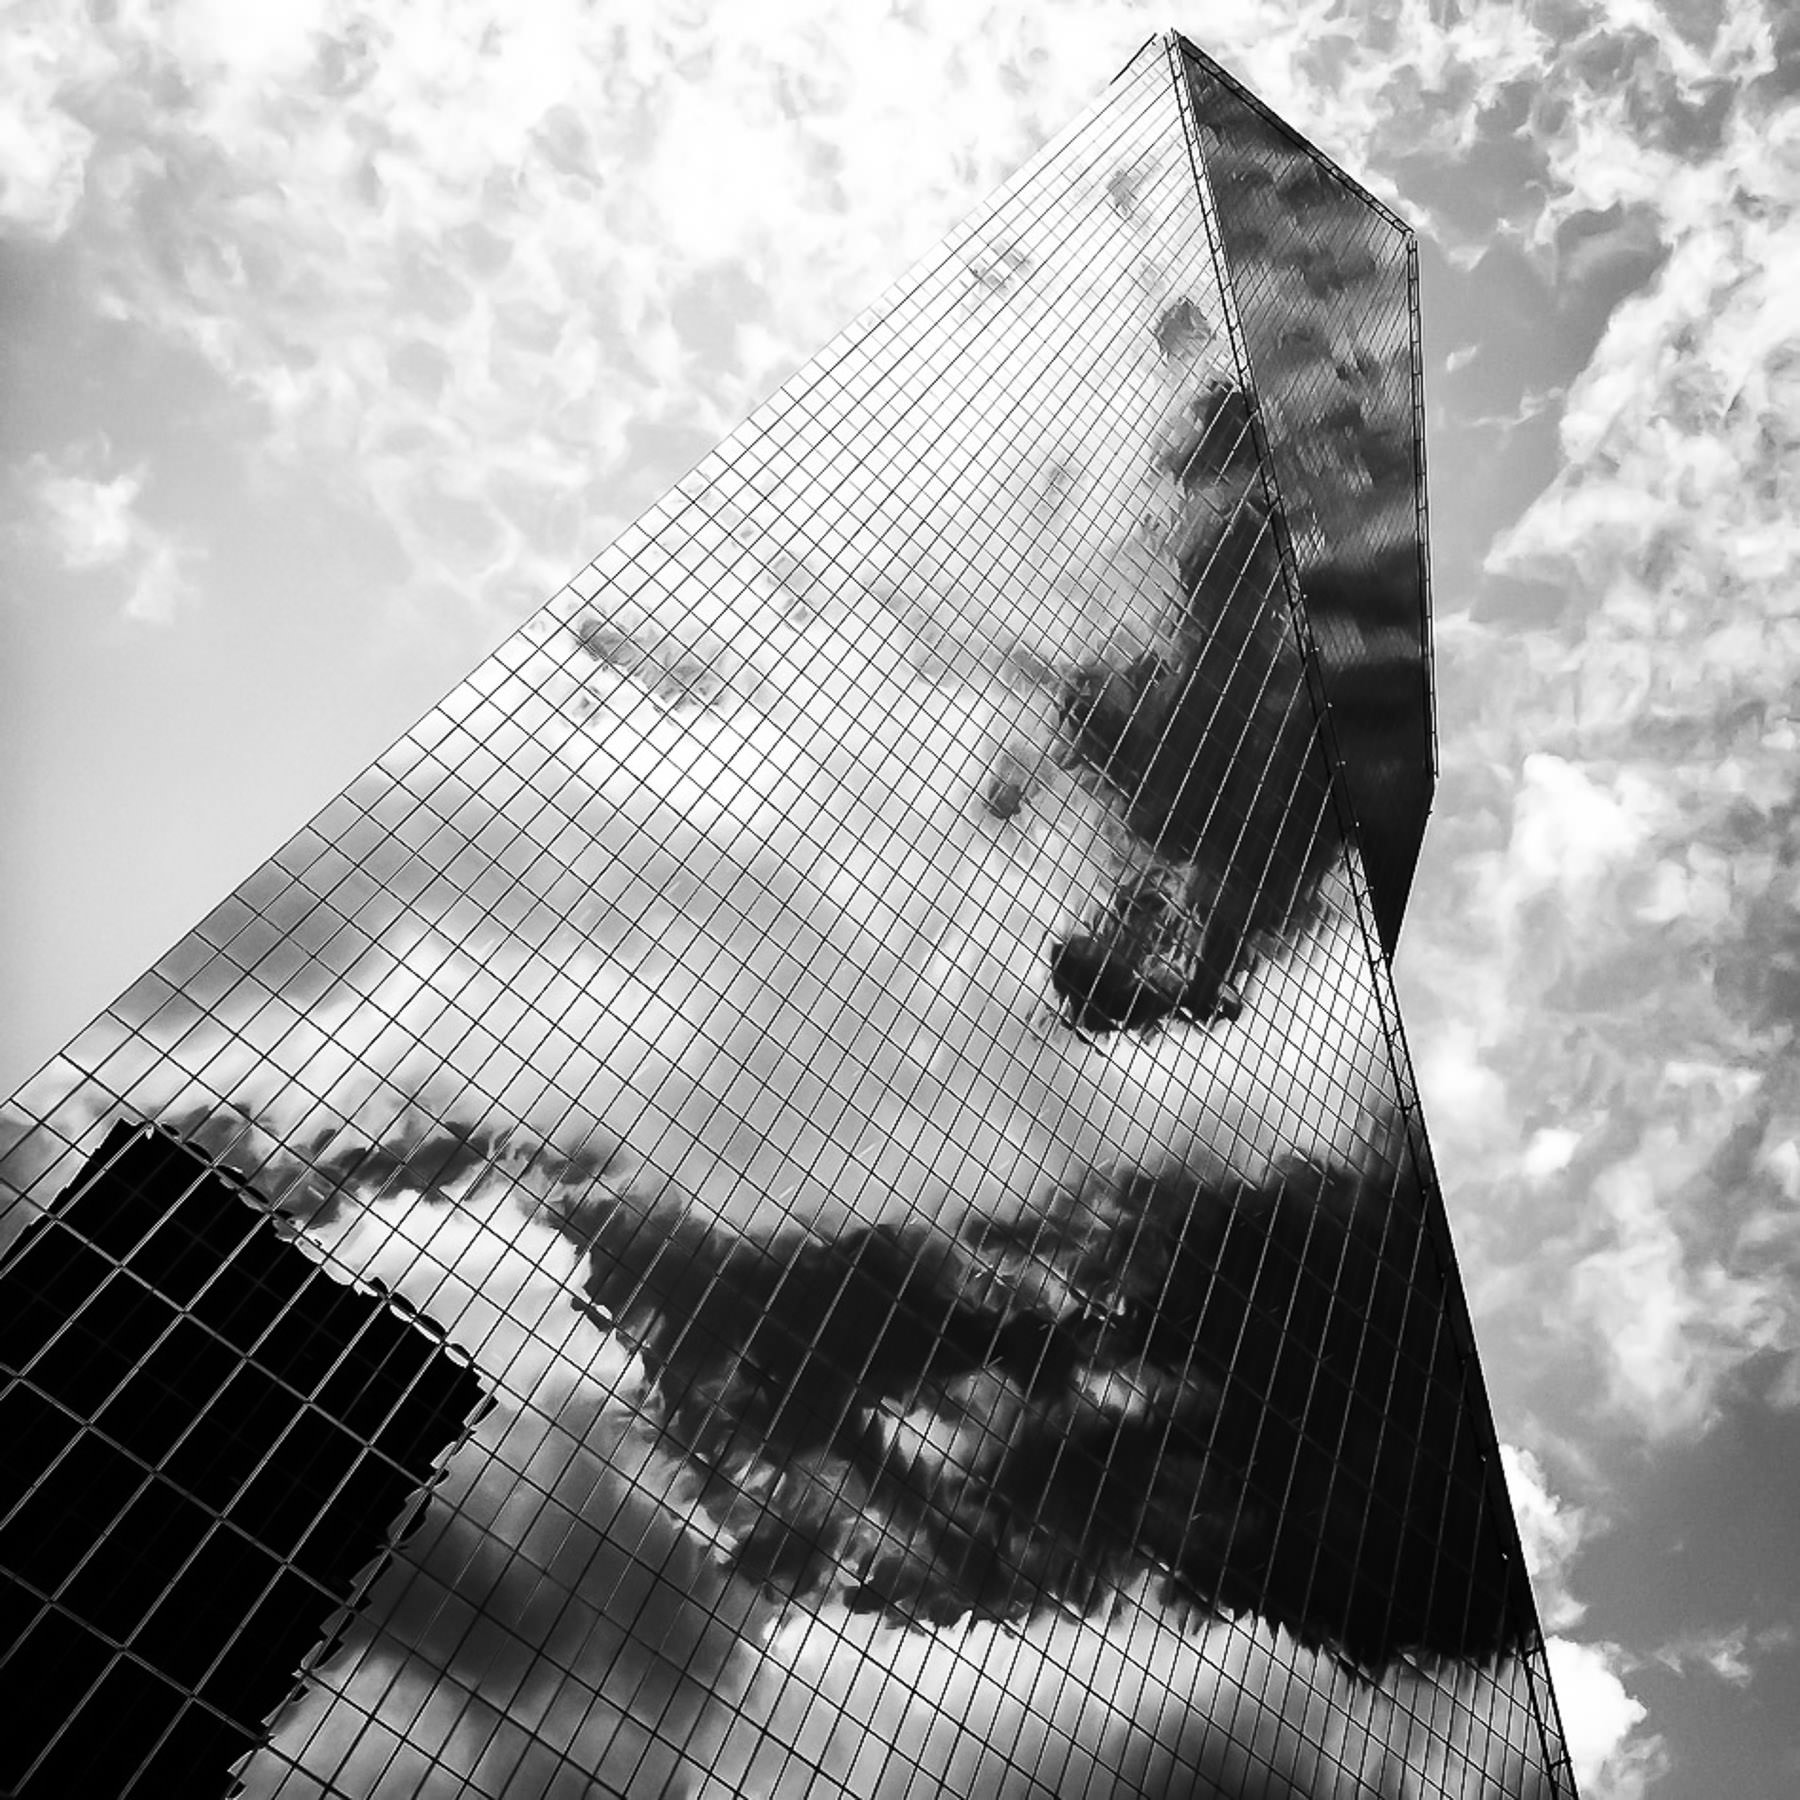 Dallas' Fountain Place tower rises into the cloudy Texas sky.